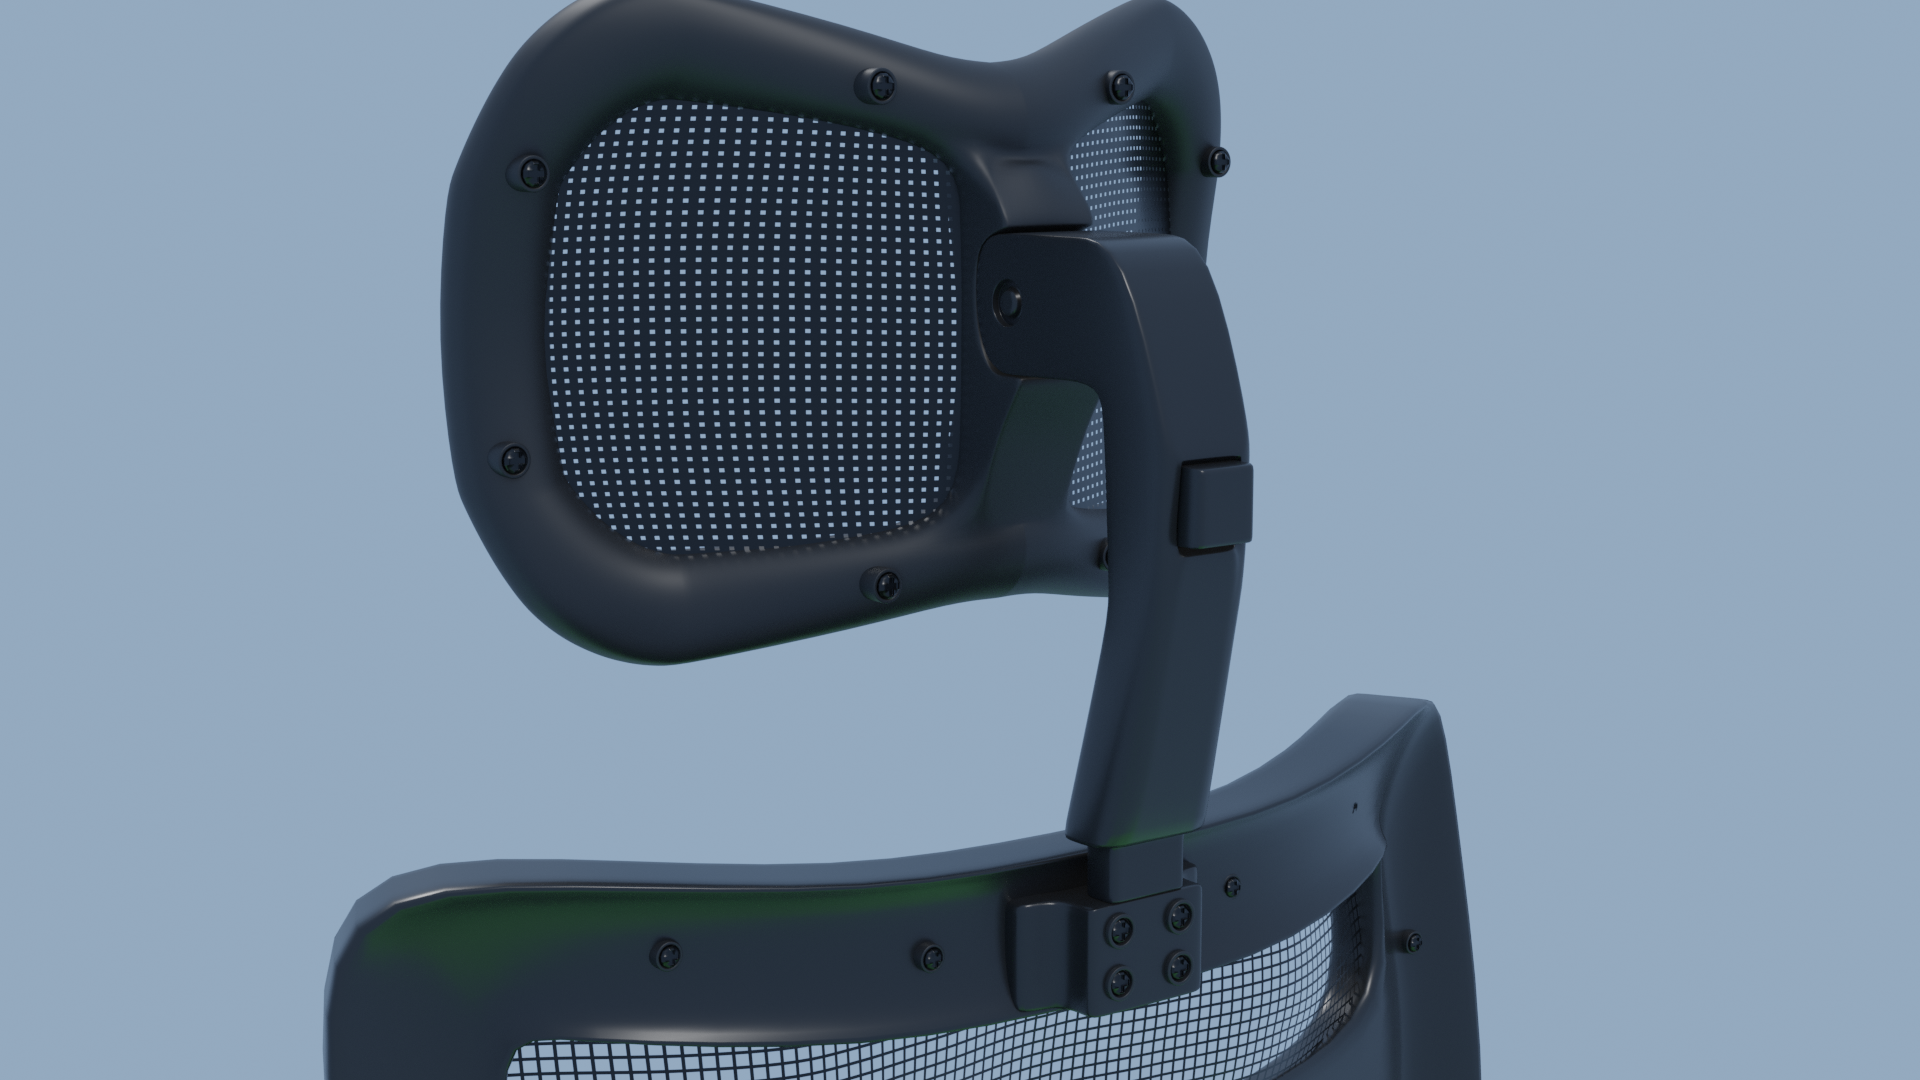 Computer chair preview image 4